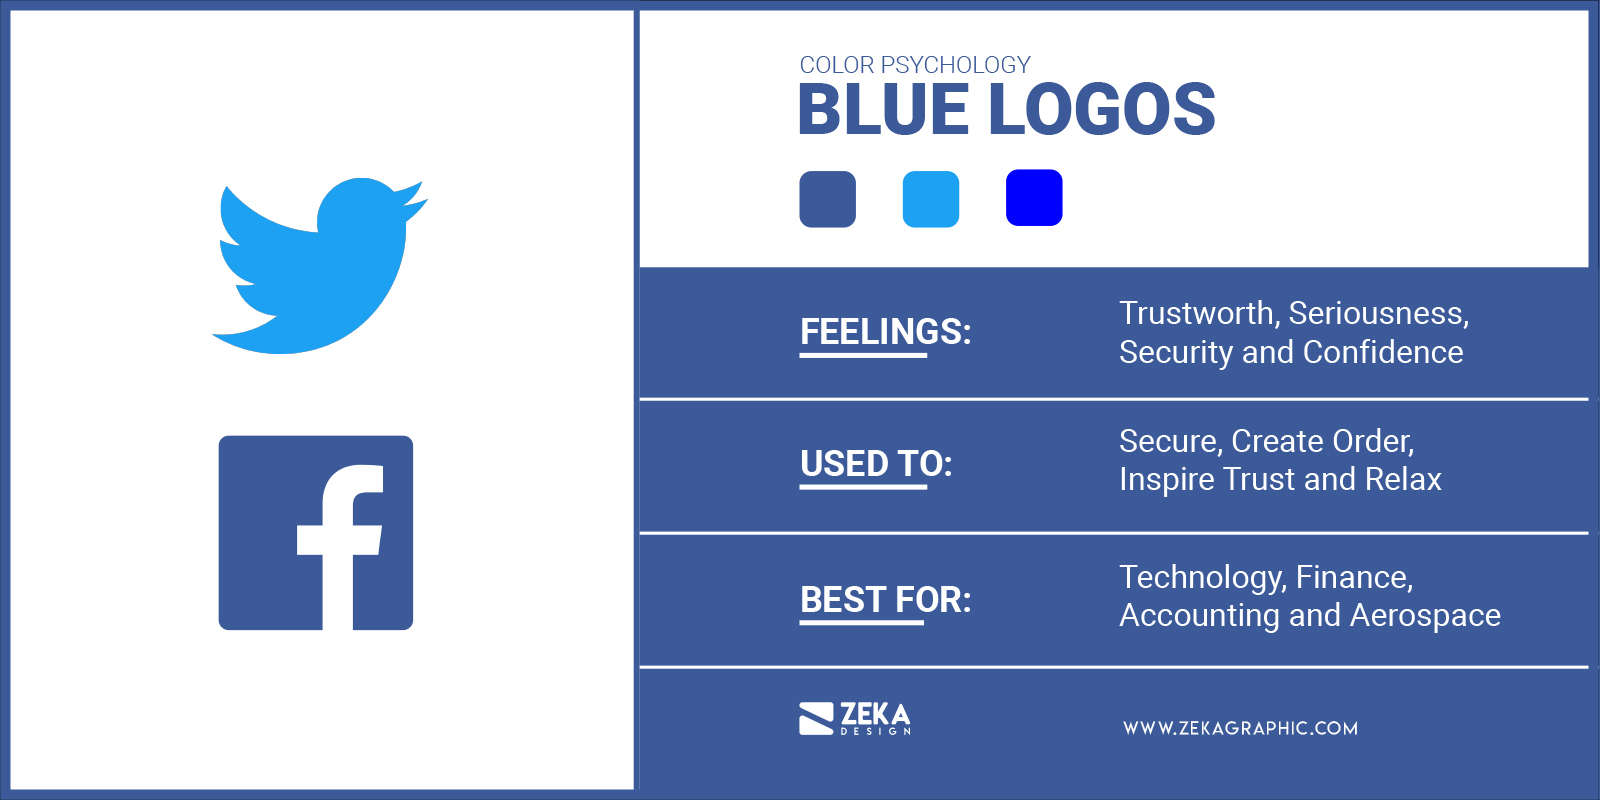 Blue Logos Meaning in Graphic Design